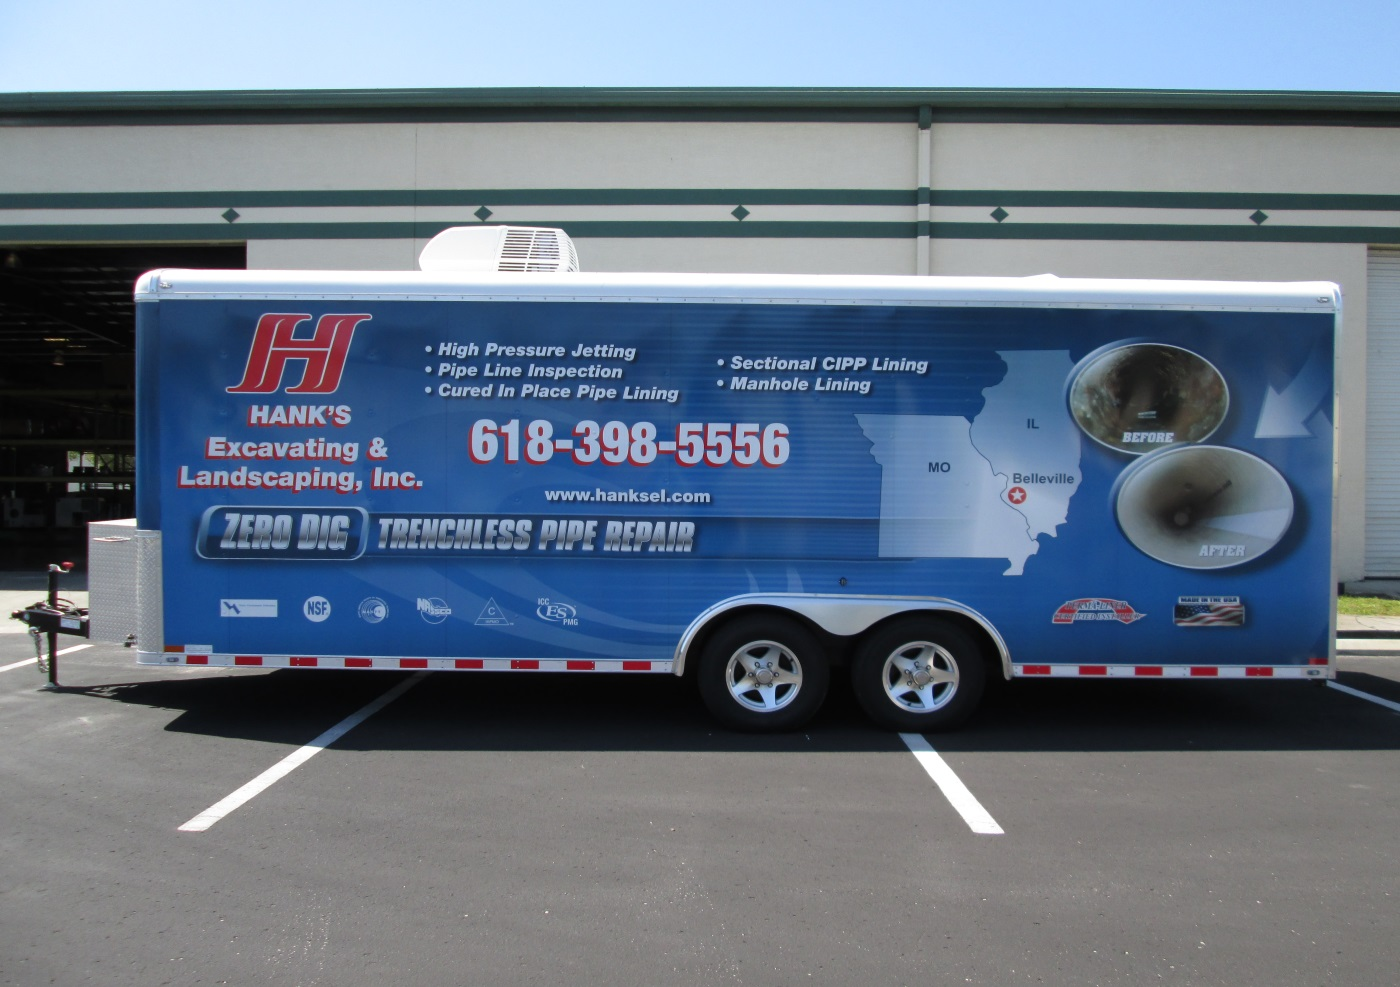 Welcome Hanks Excavating & Landscaping Inc. to the Perma-Liner Family